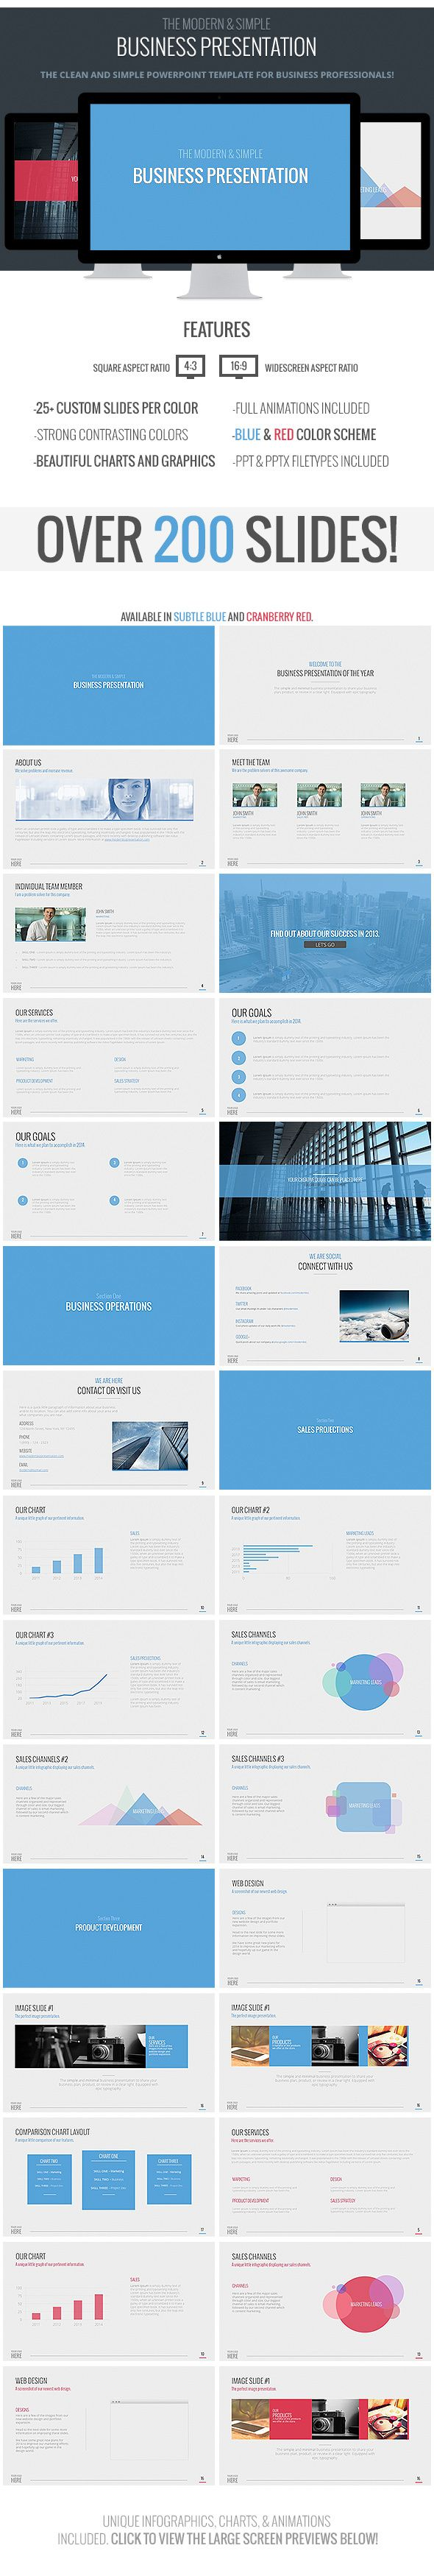 The Modern  Simple Business Powerpoint Presentation by Mike Moloney, via Behance